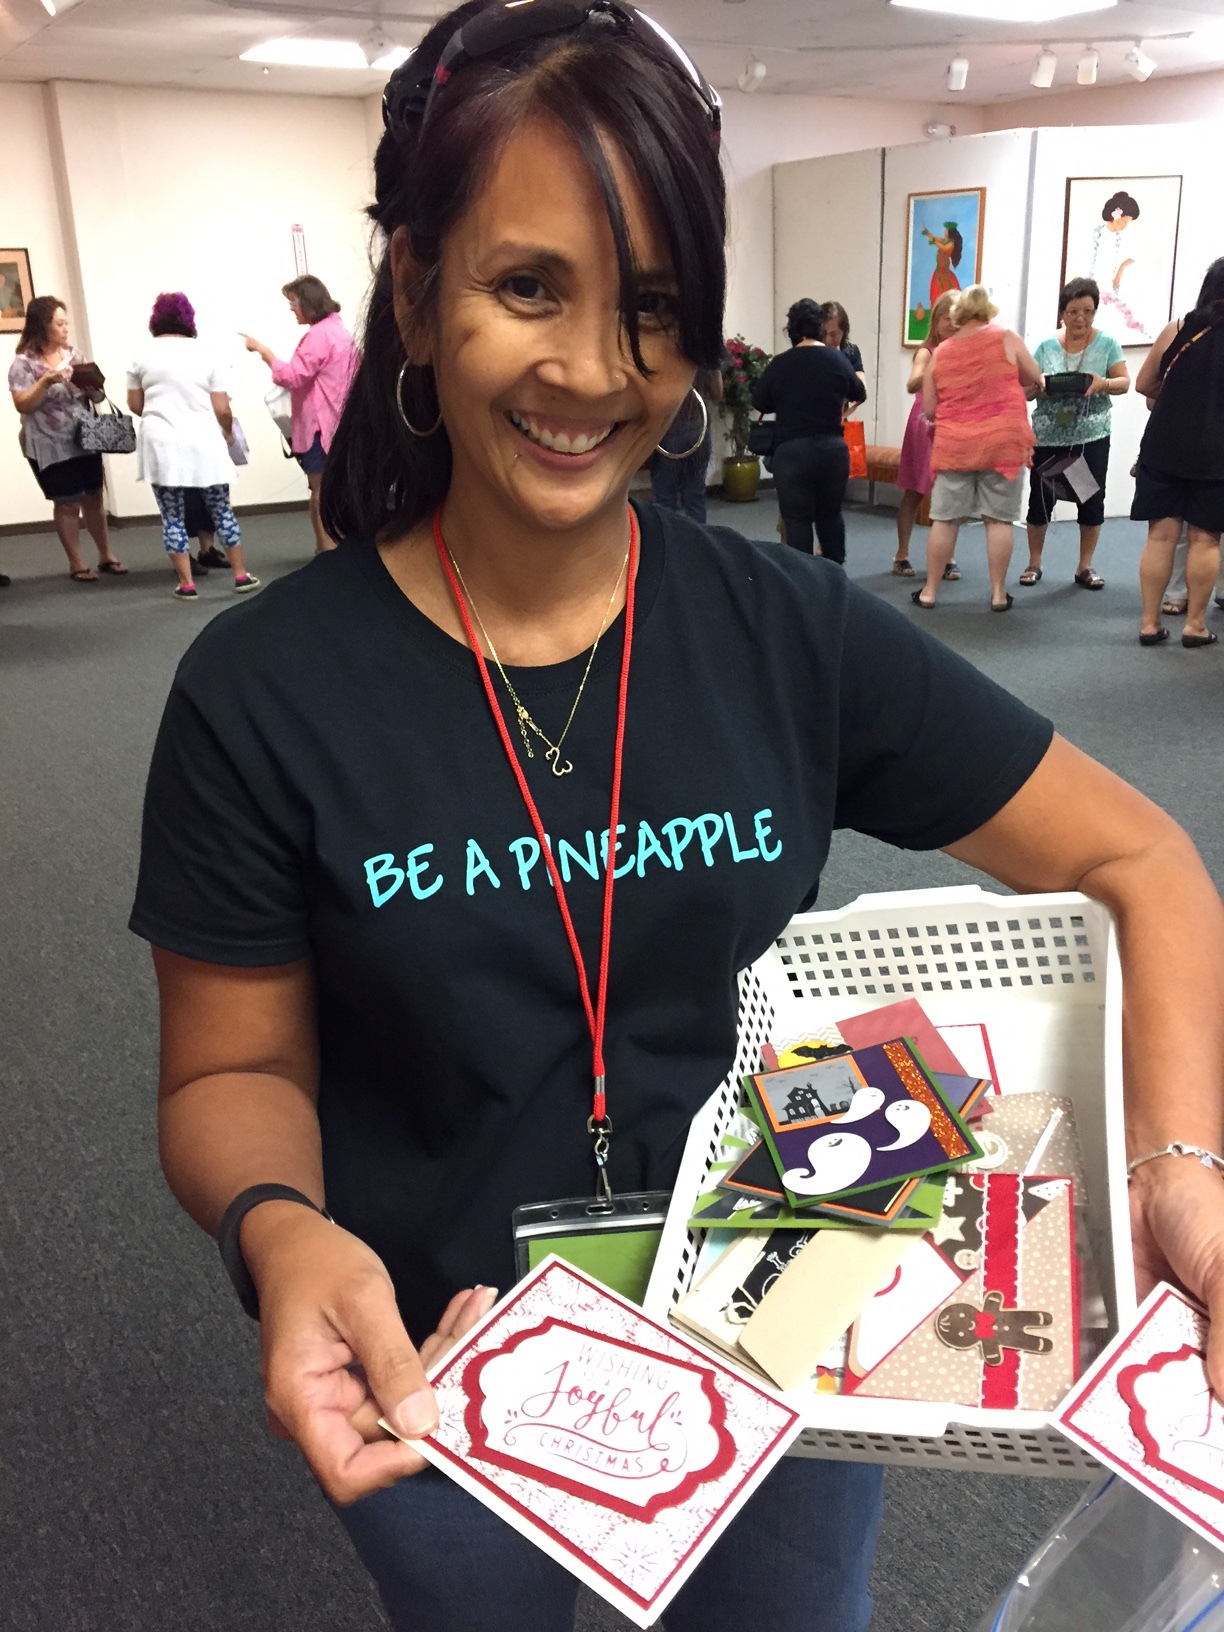 Berd swapping at our stamp camp - www.stampedwithaloha.com